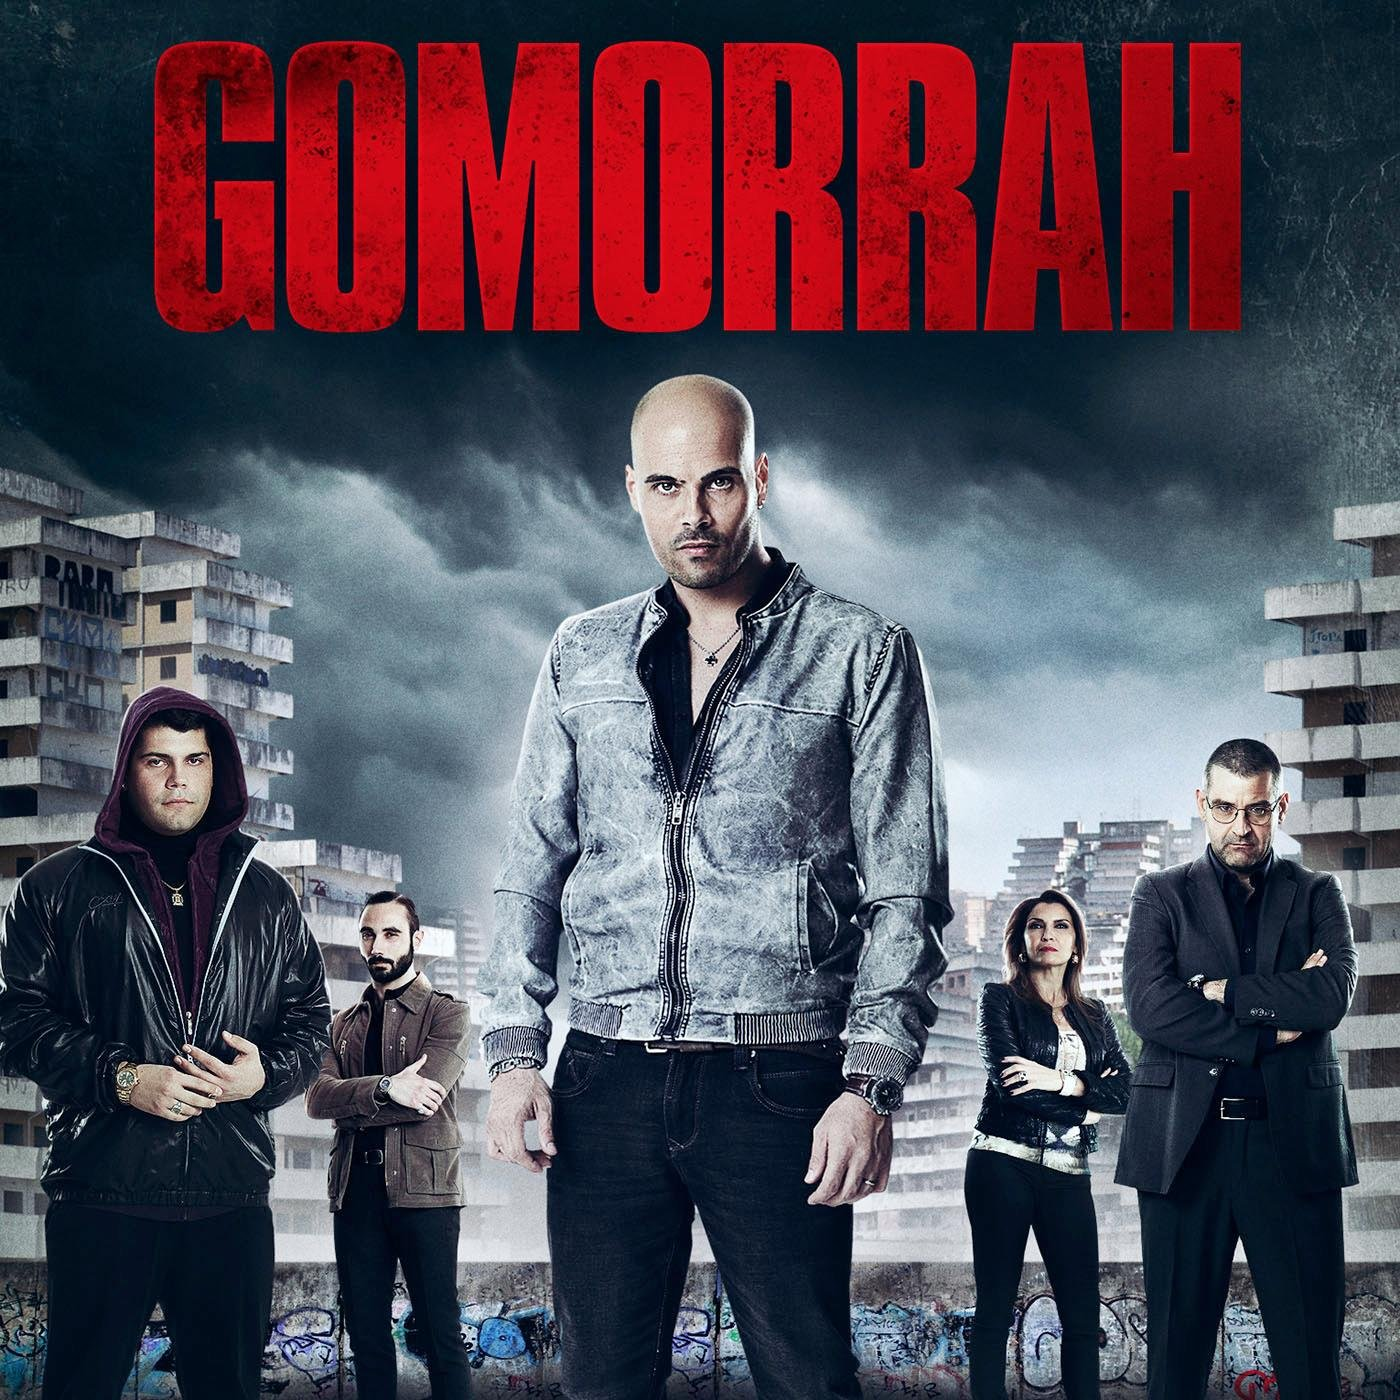 Gomorrah The TV Series Coming To The Sundance Channel – I Love